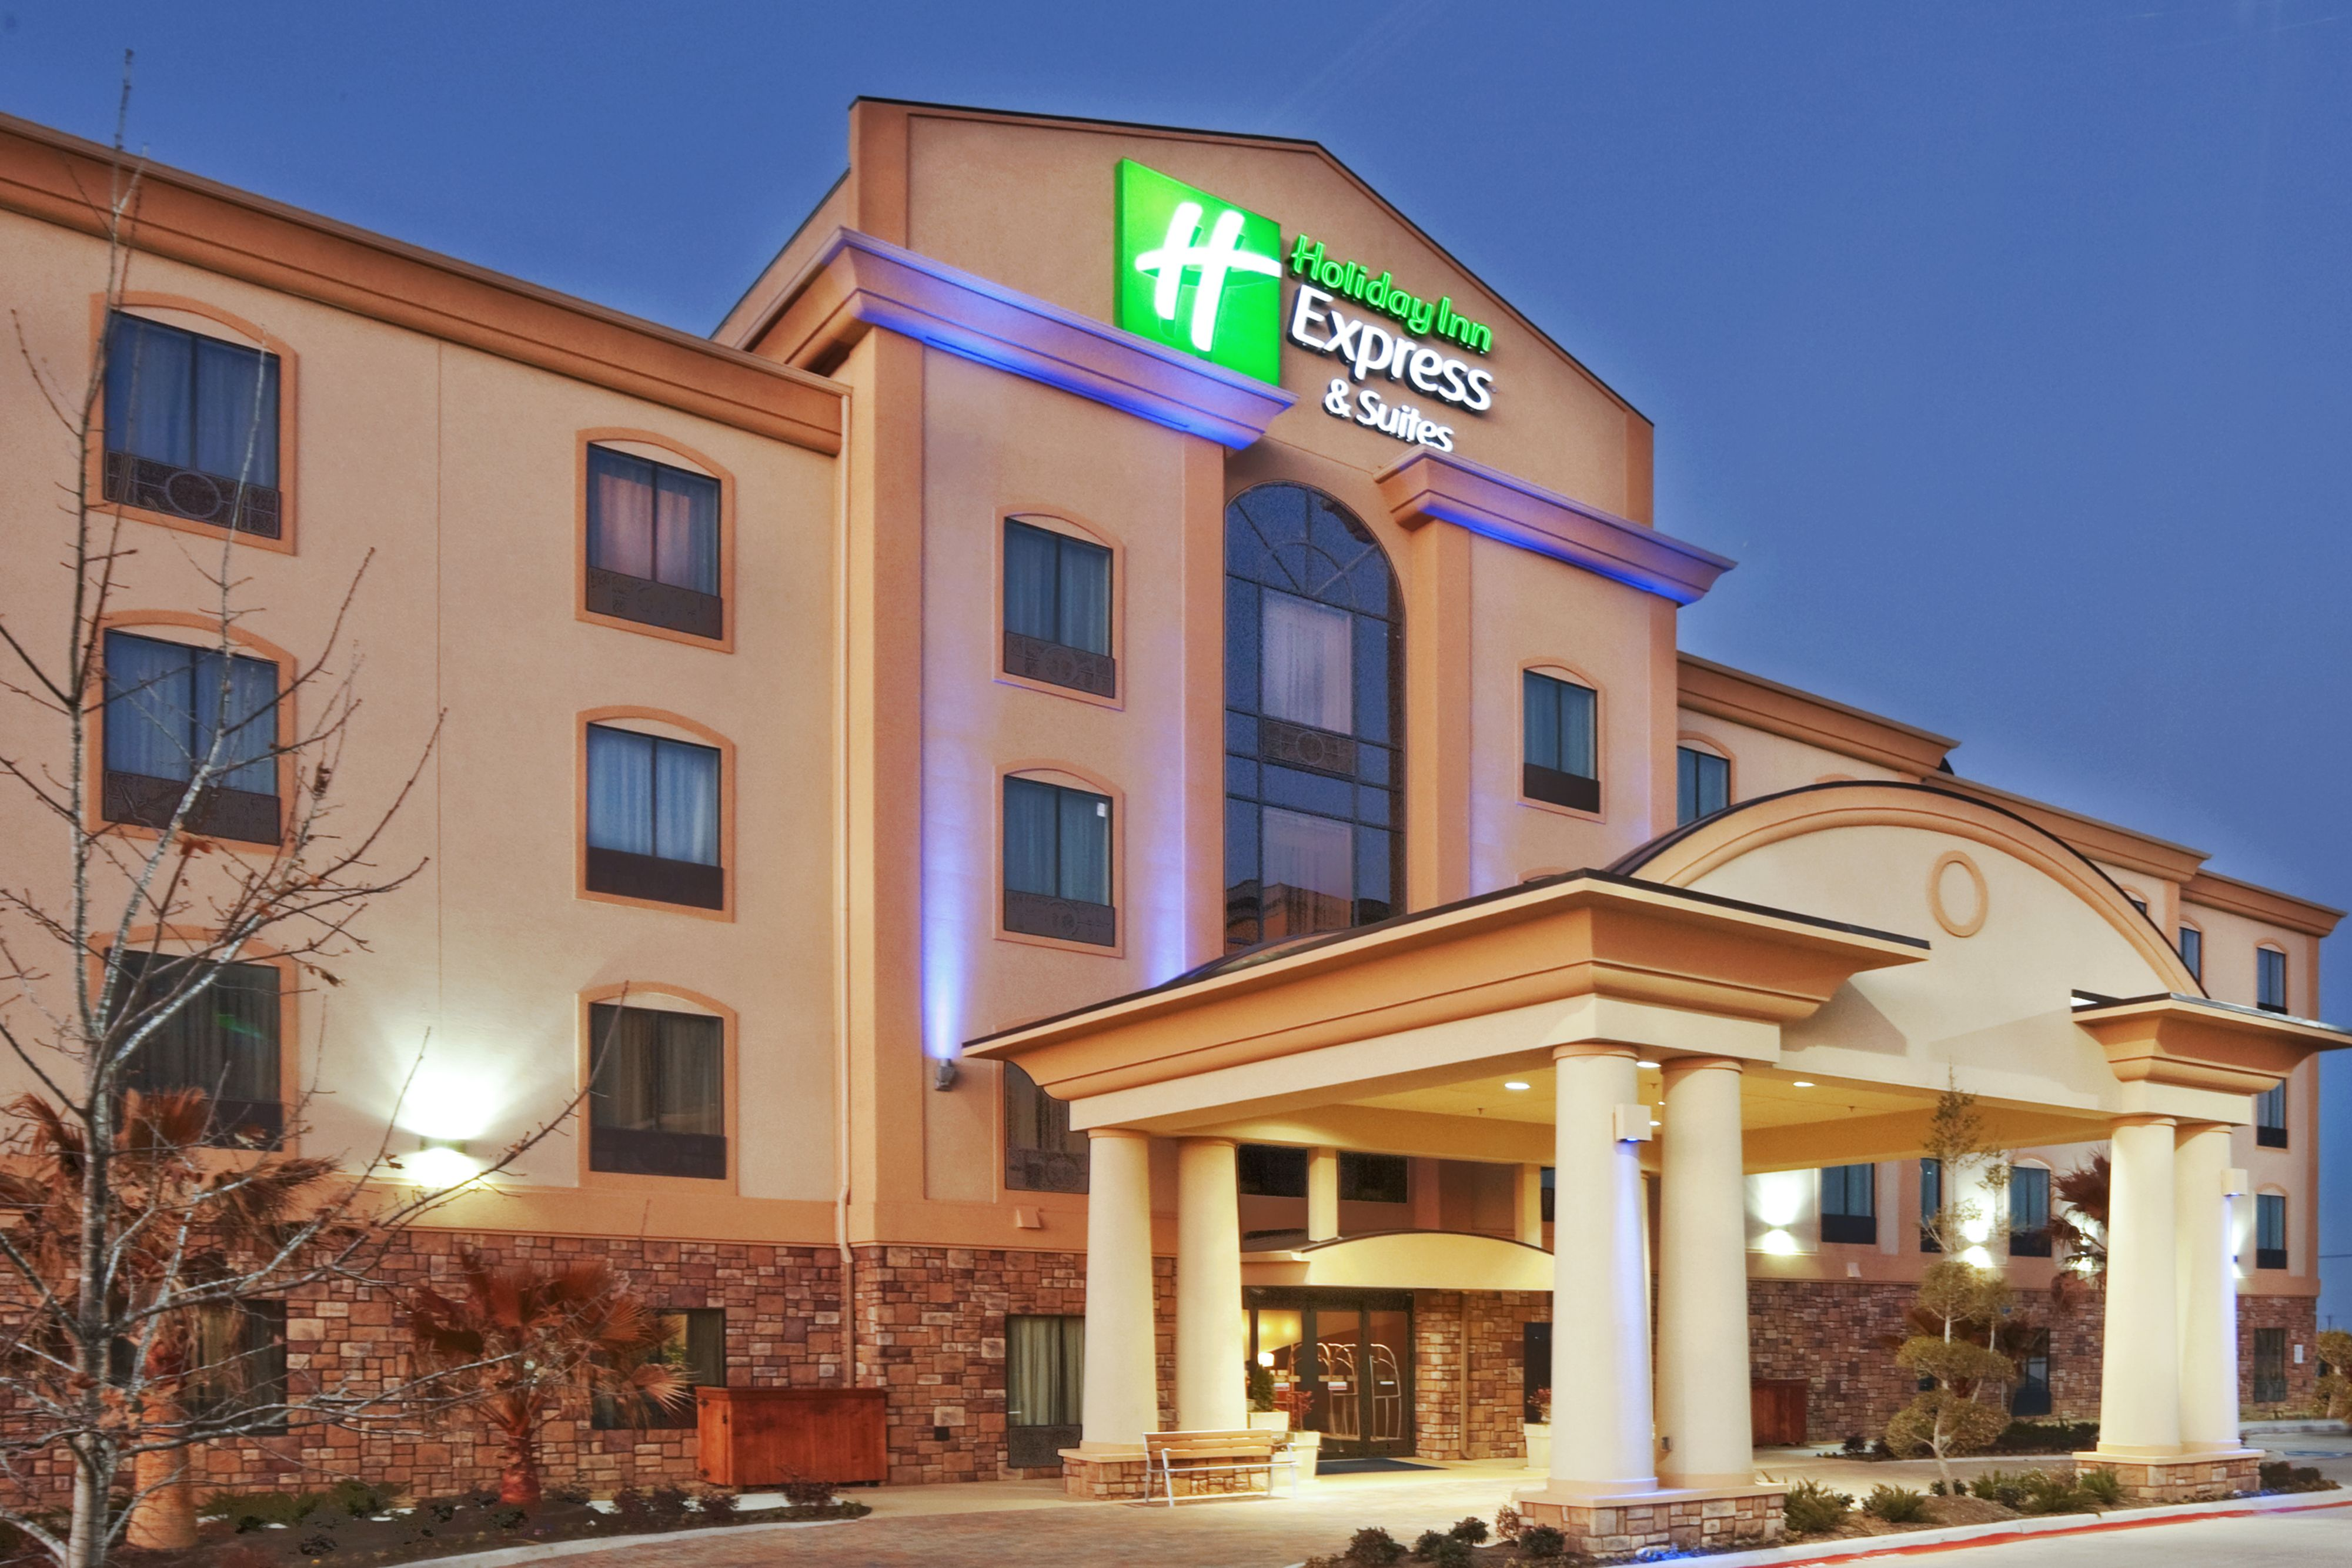 Holiday inn express suites deming mimbres valley deming for Grand motor inn deming